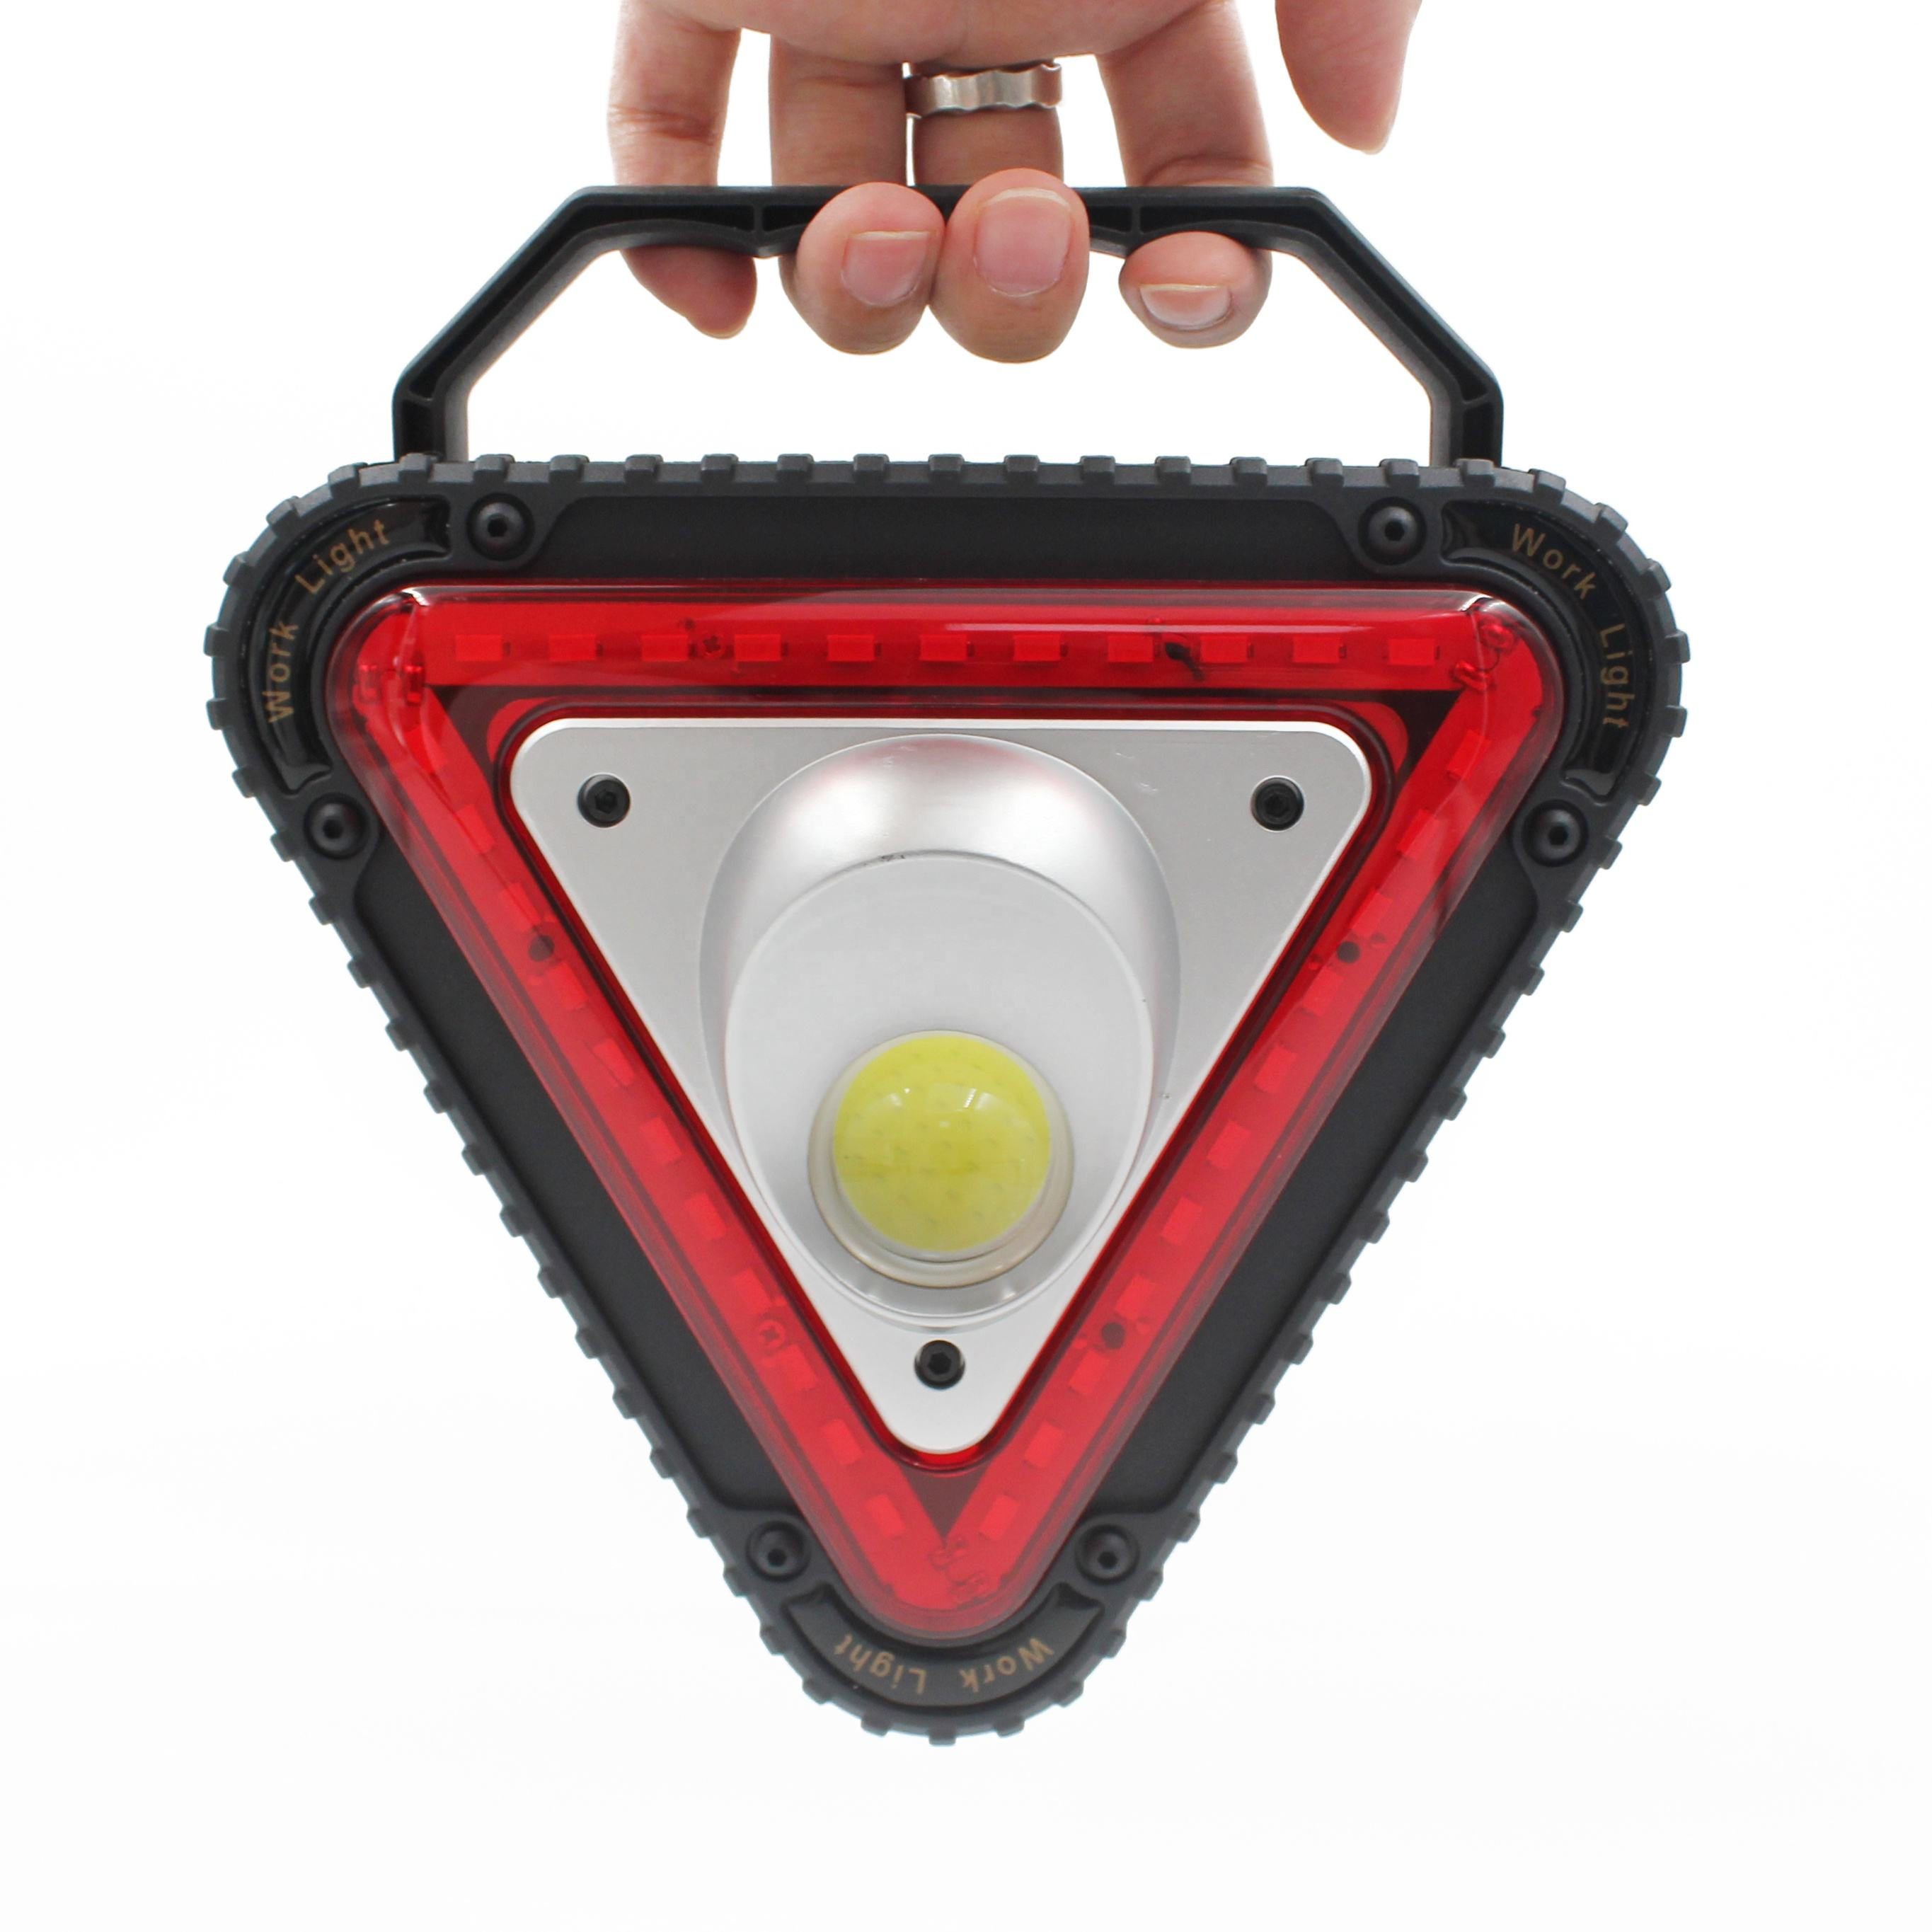 Portable outdoor 10w cob Rechargeable Car Emergency floodlight road hazard LED Warning Light